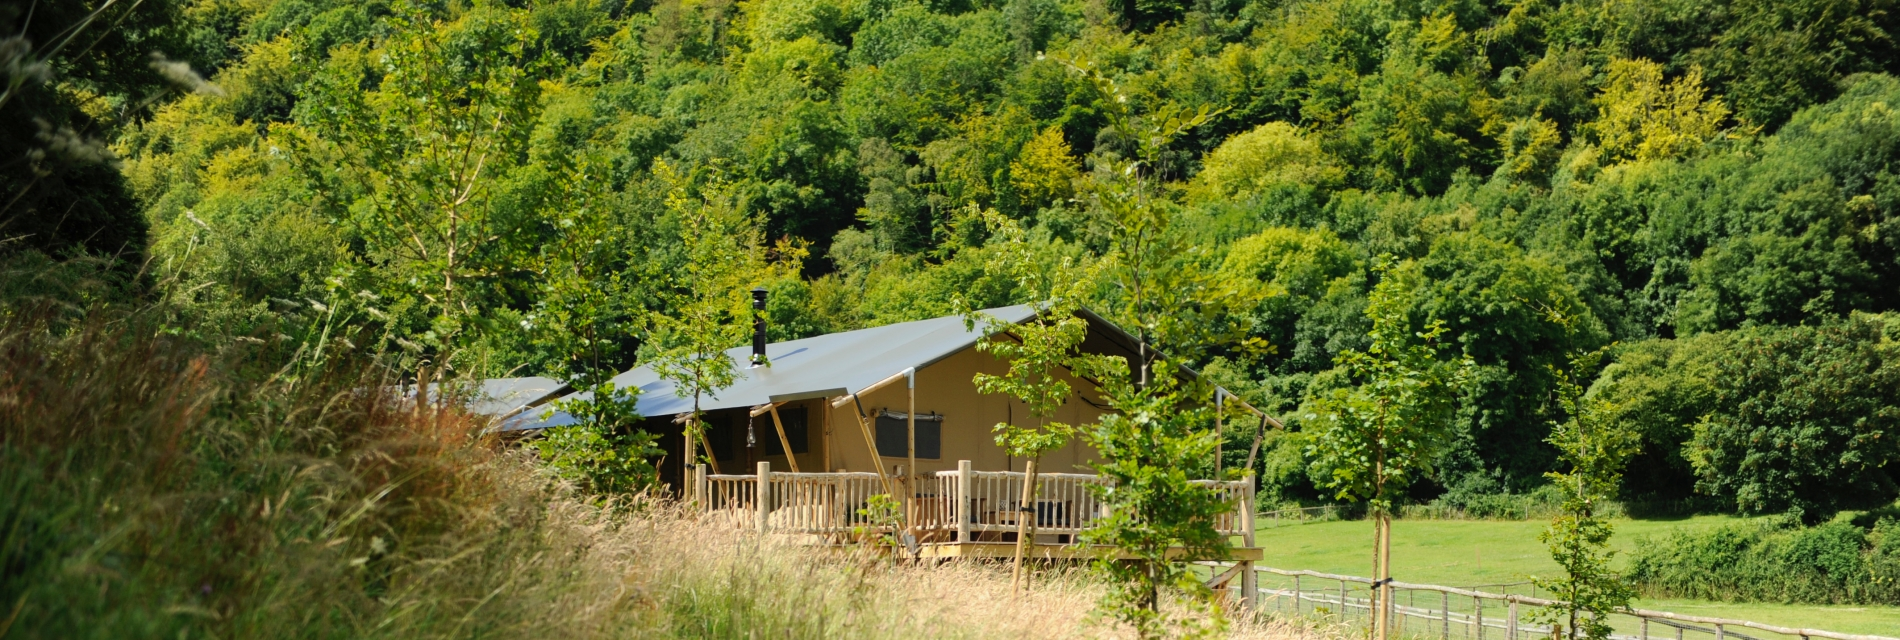 Lodges at Loose Reins surrounded by scenery